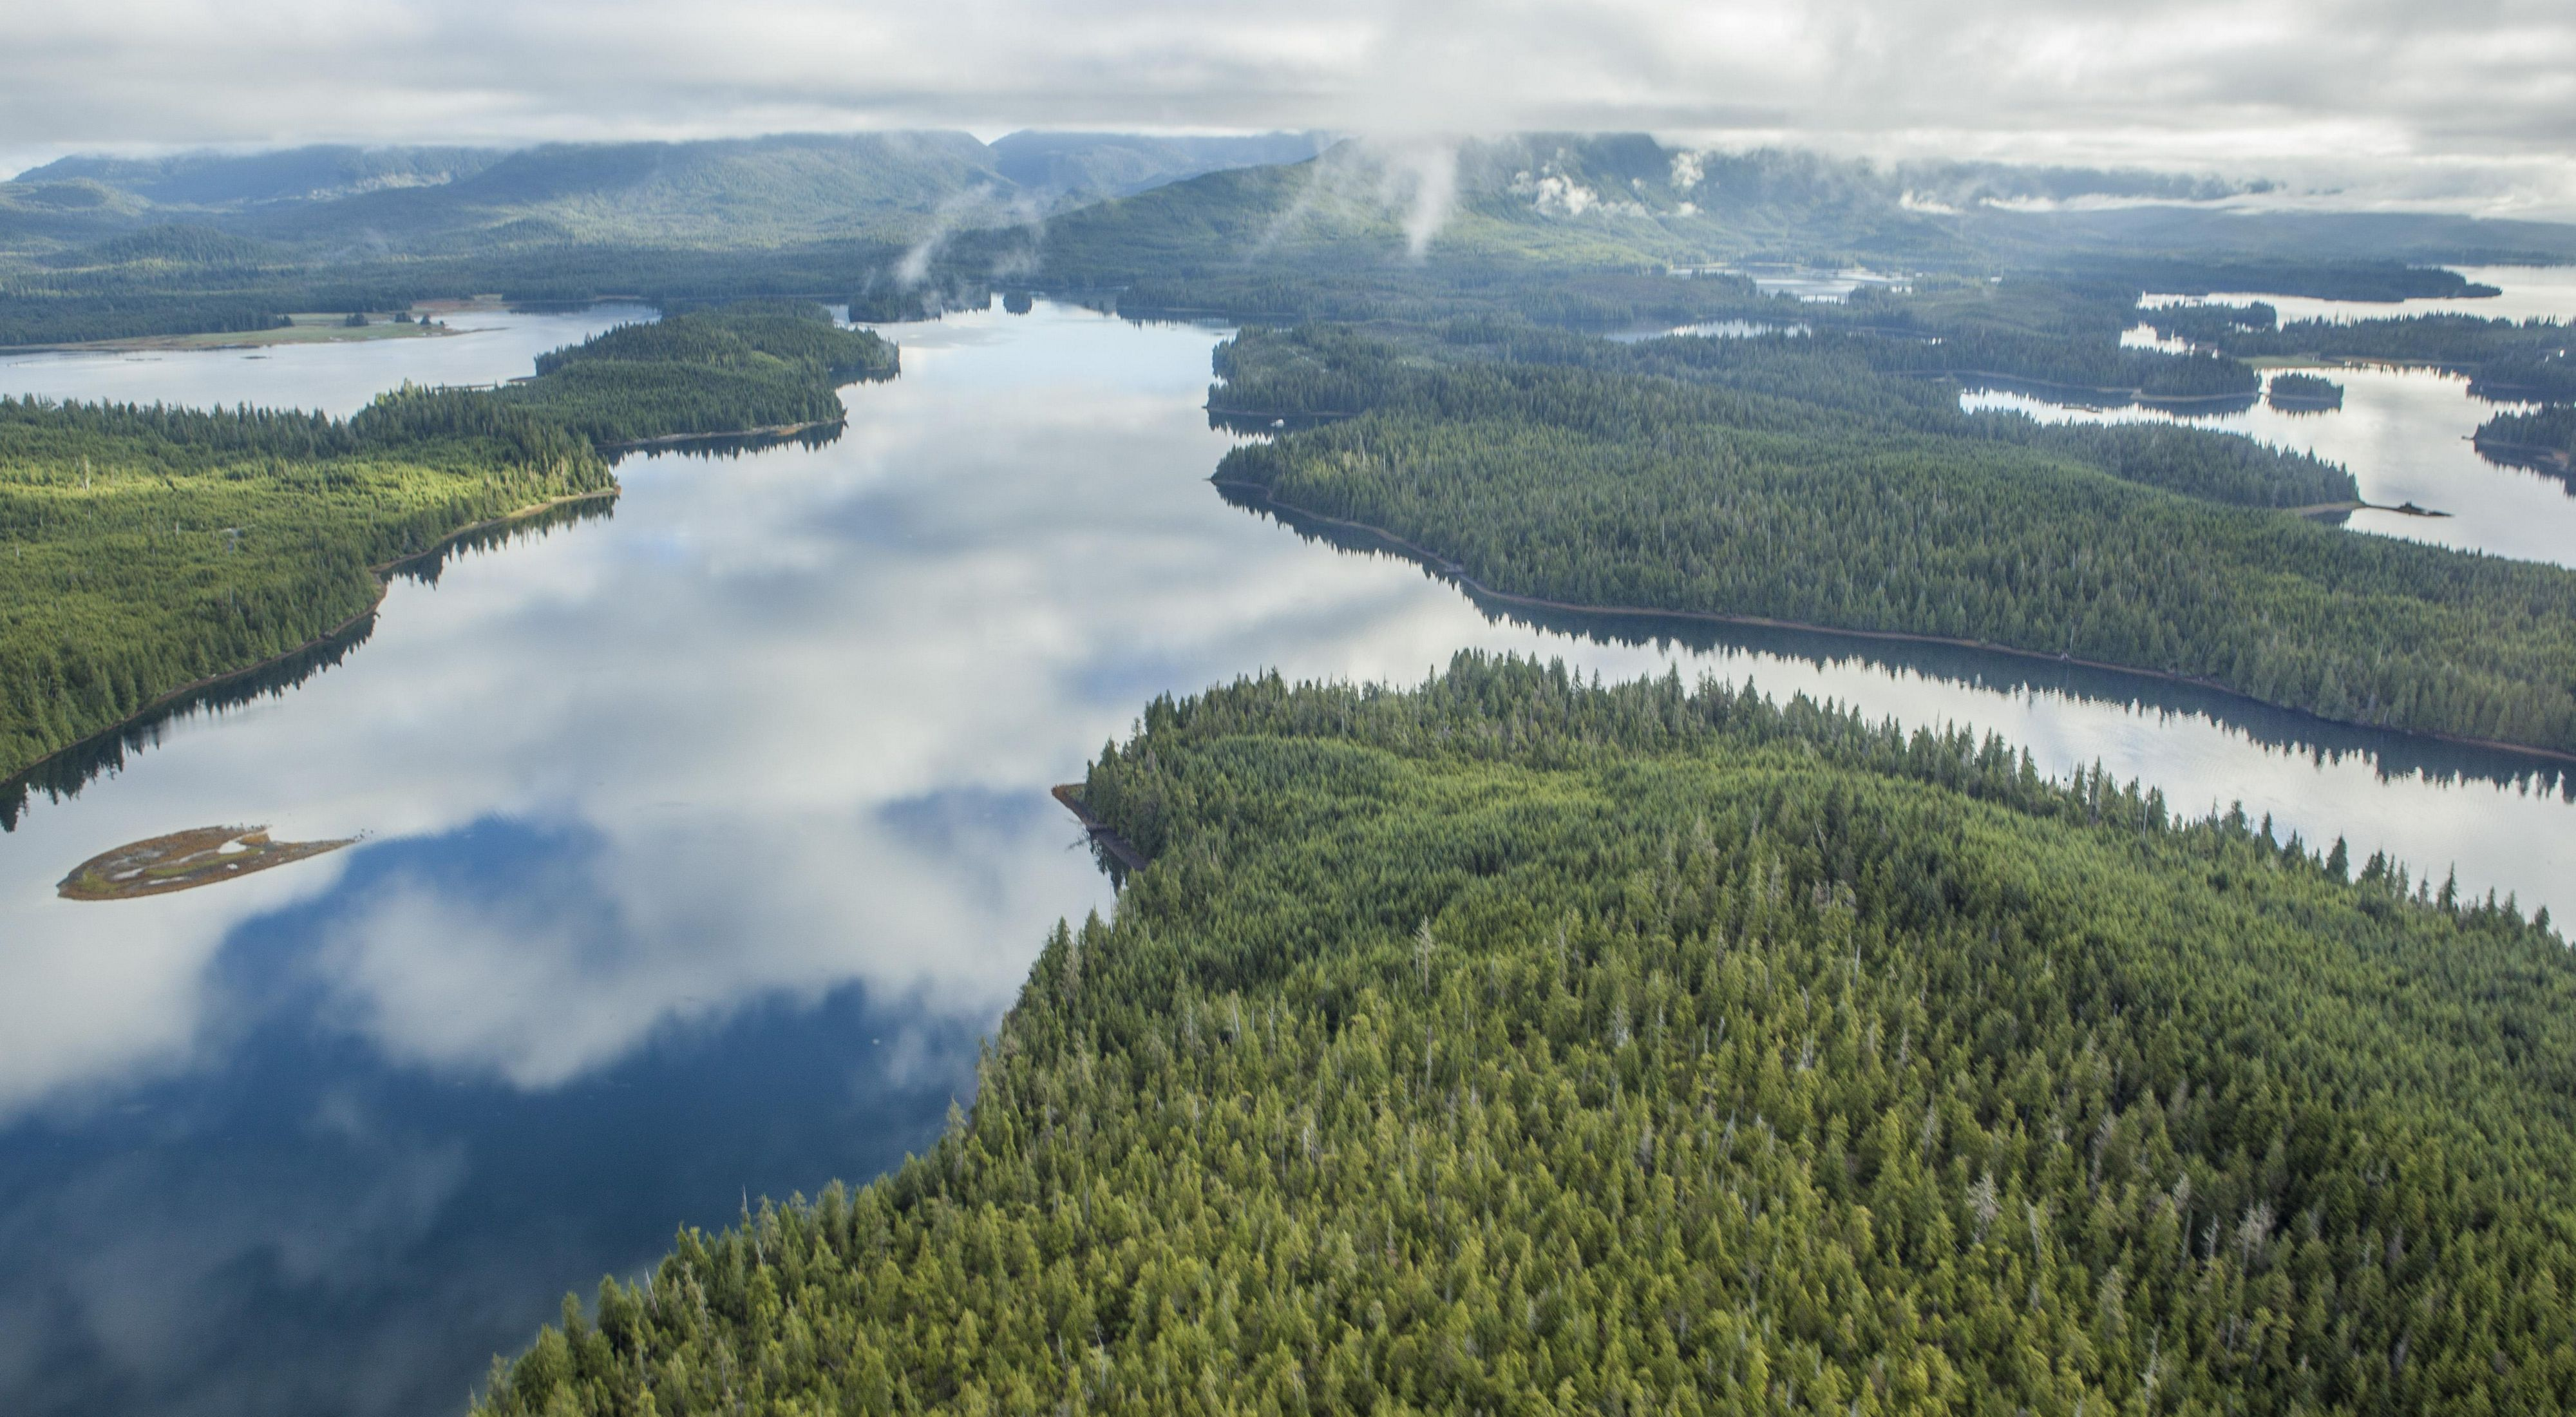 Aerial view of water and forests.